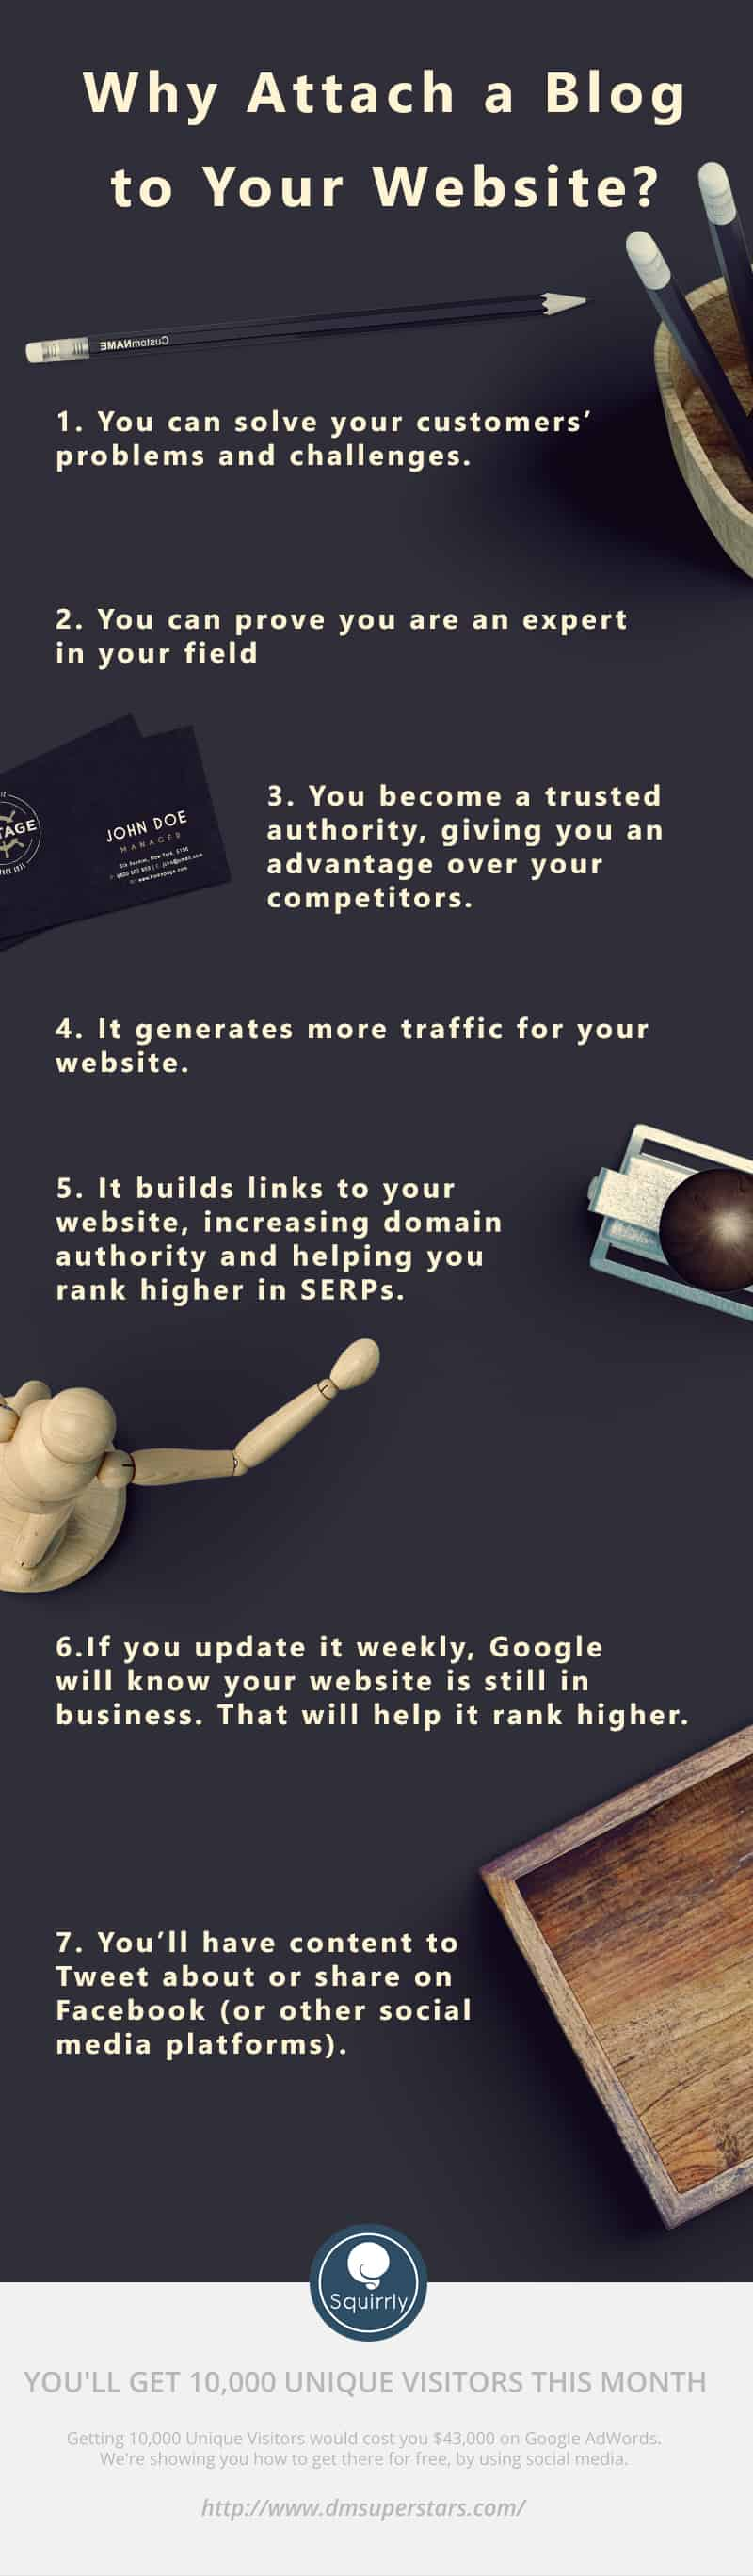 Why attach a blog to your website?